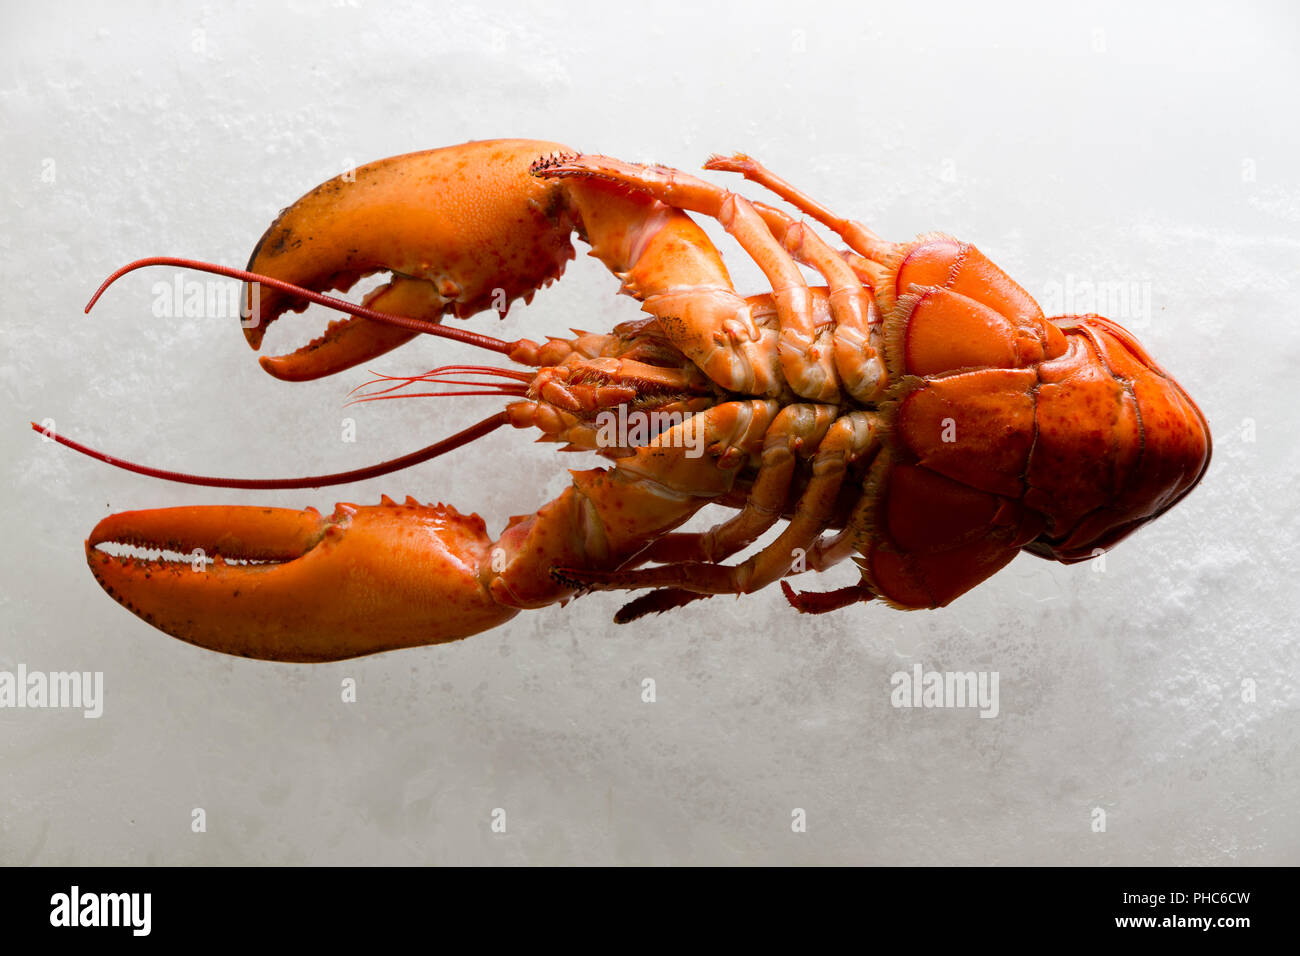 Lobster Underside High Resolution Stock ...